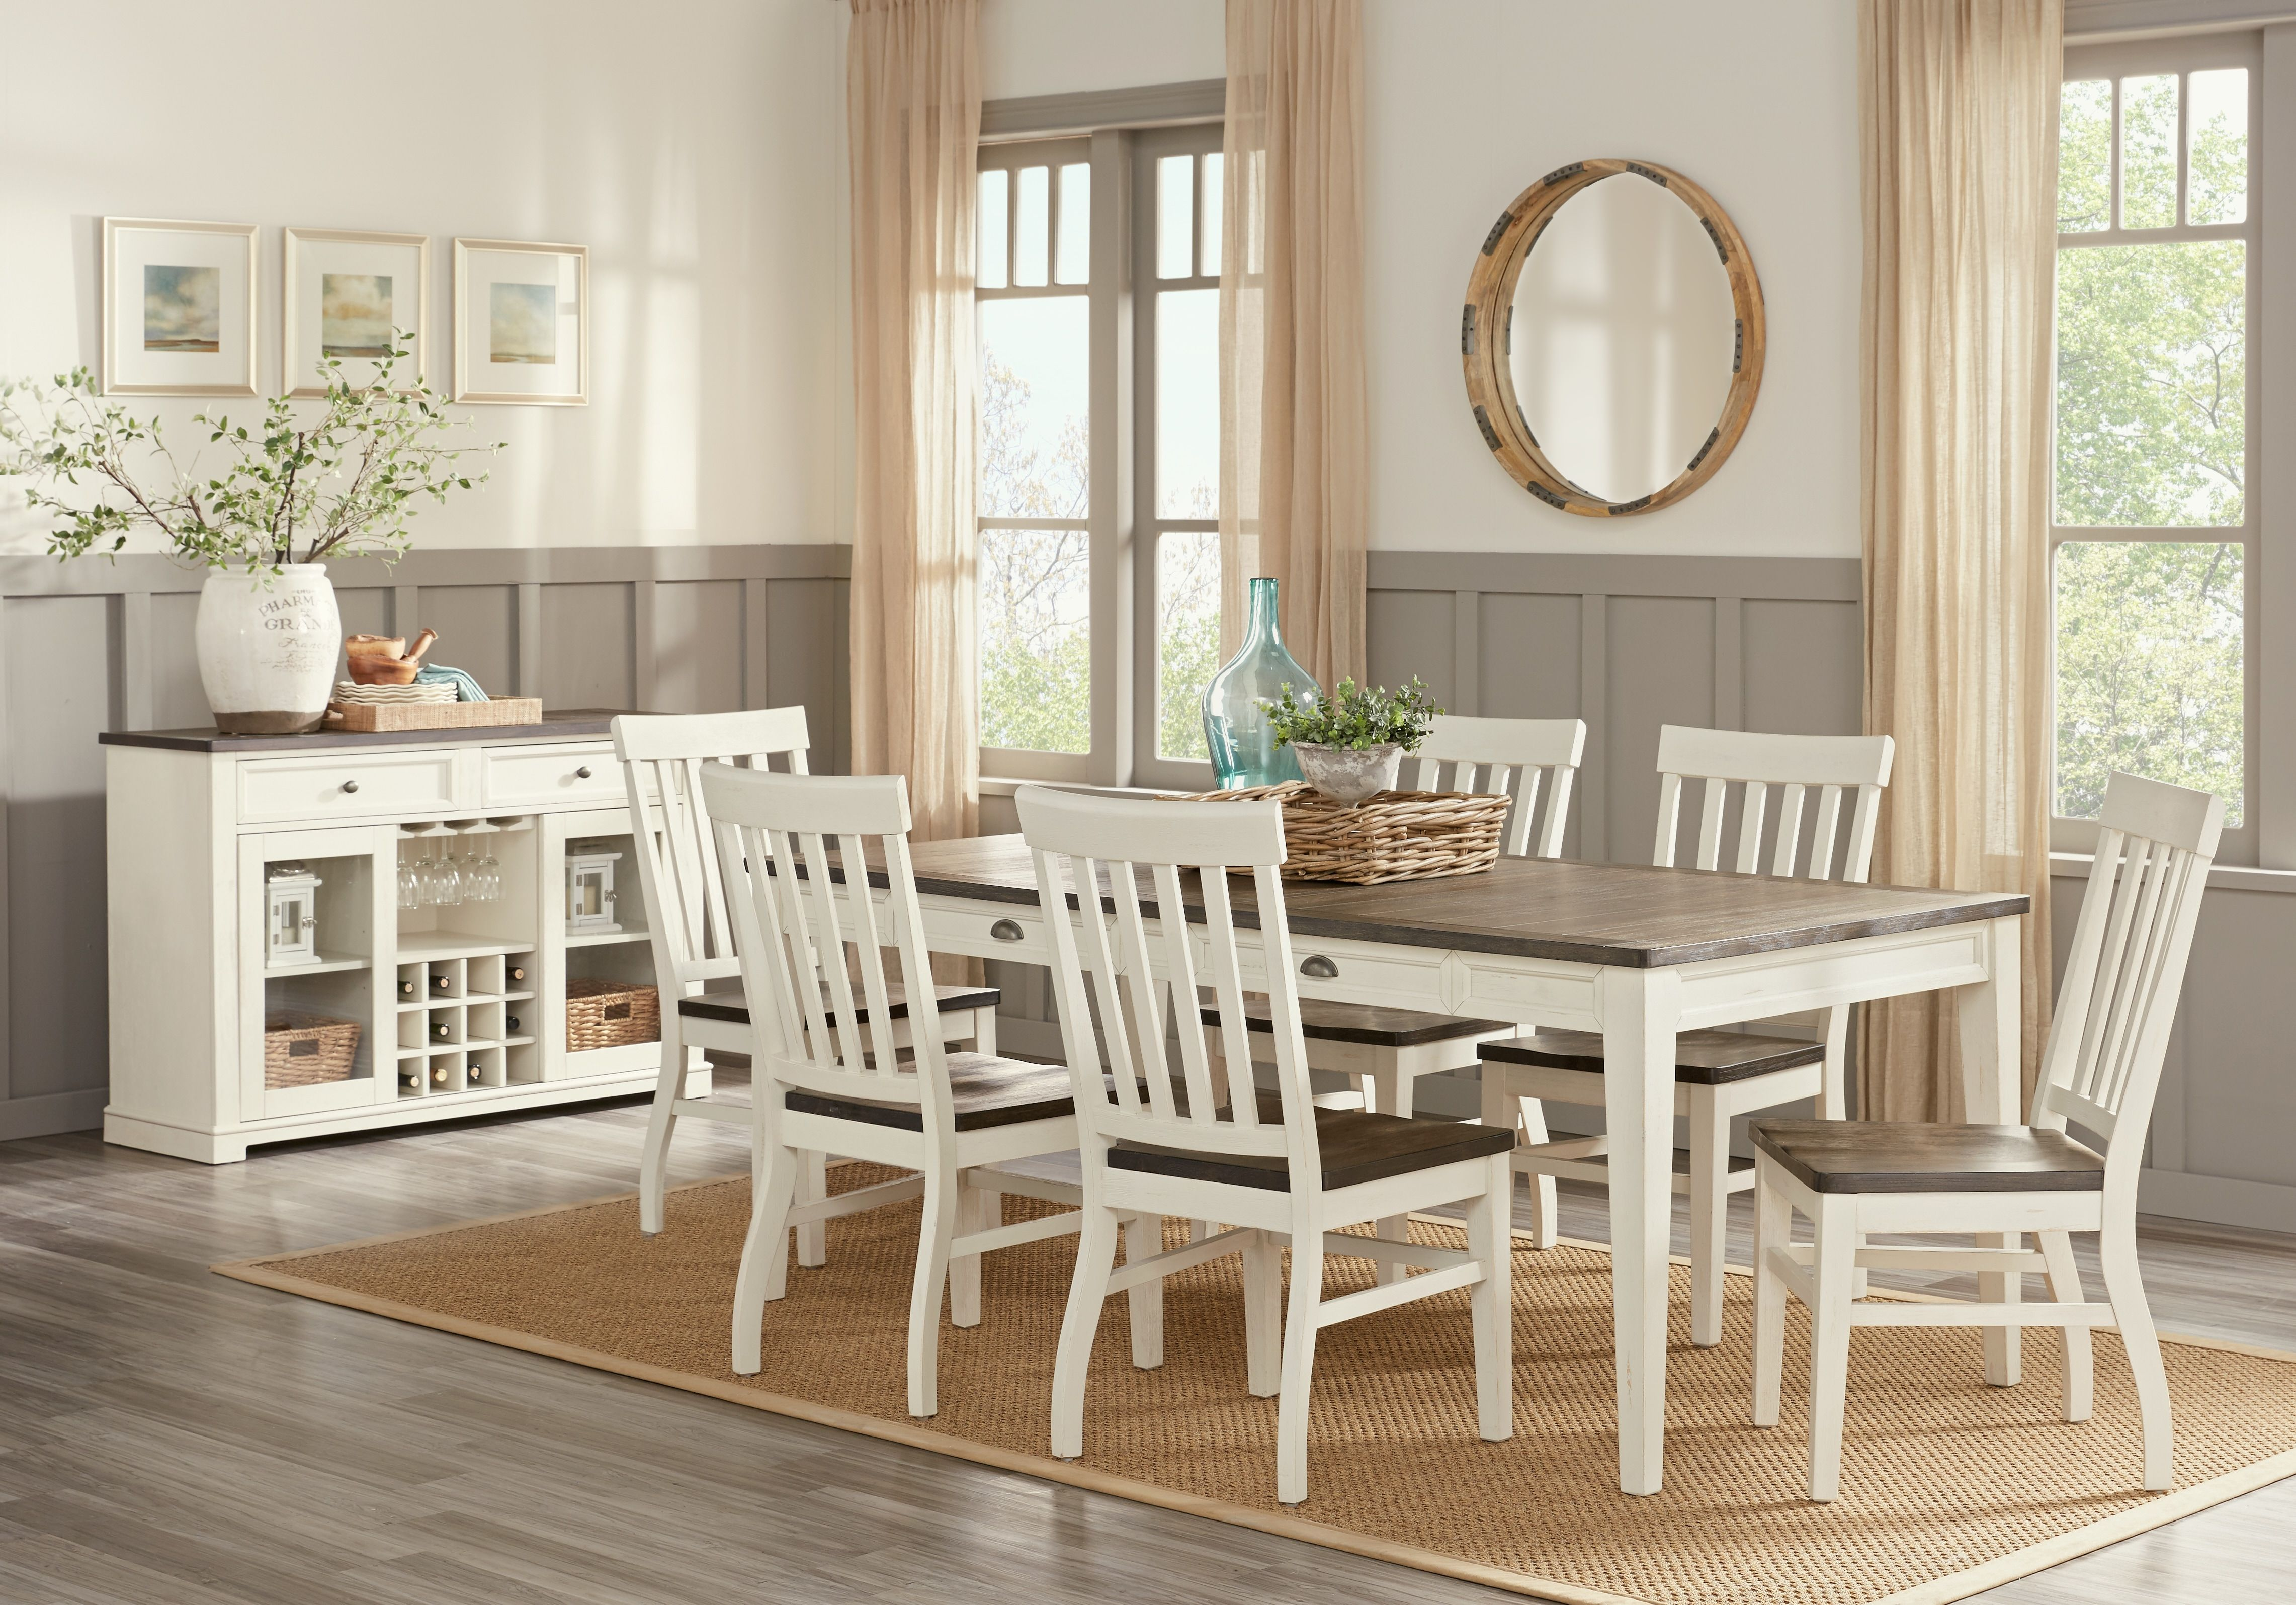 Keston White 5 Pc Rectangle Dining Room, Affordable Dining Room Sets